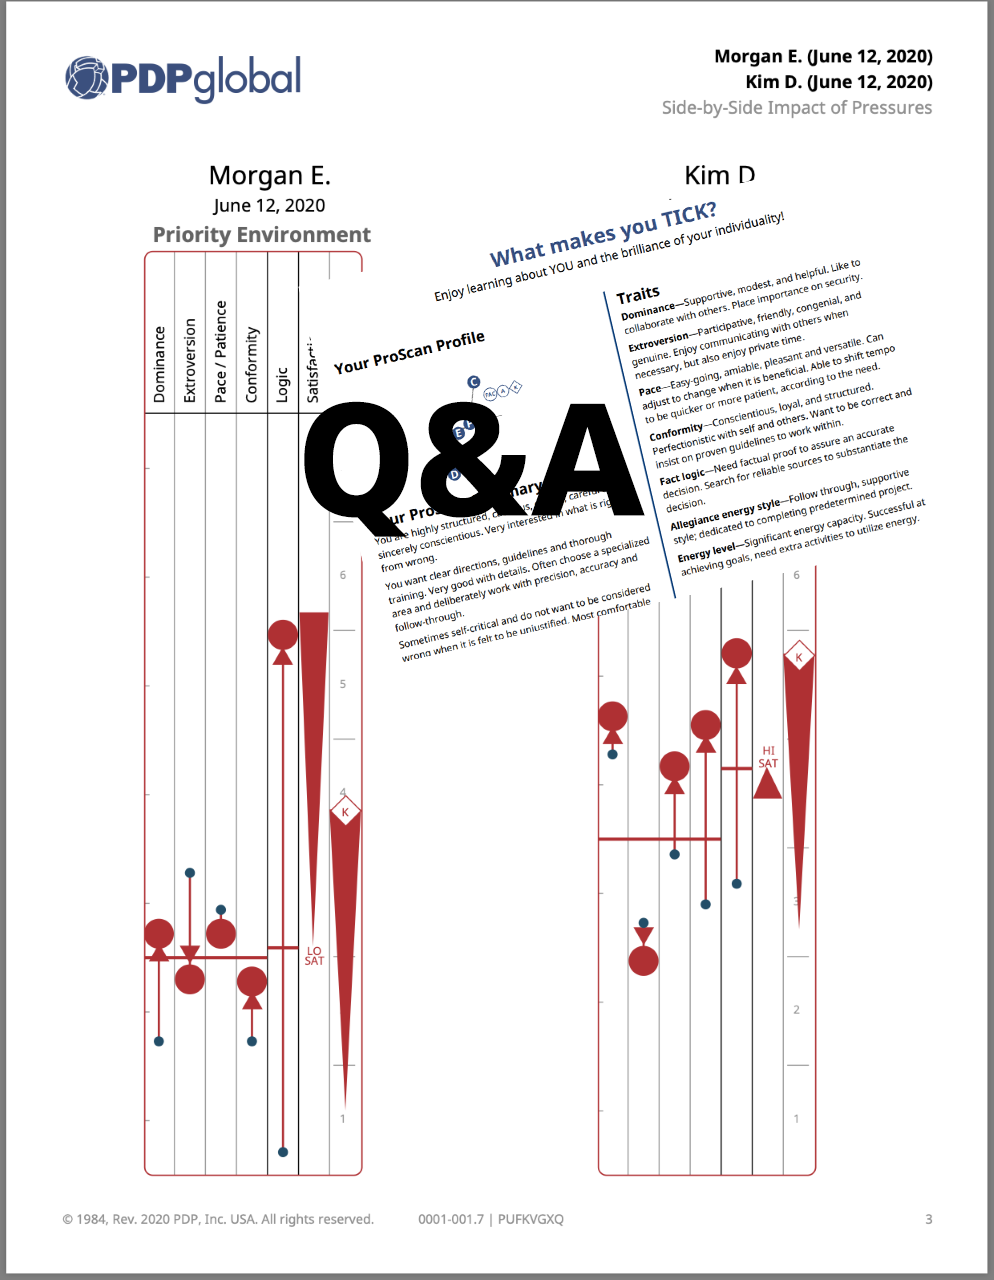 Personal Performance Actions Report plus Q&A Personal QuickView & Side-by-Side Priority Reports